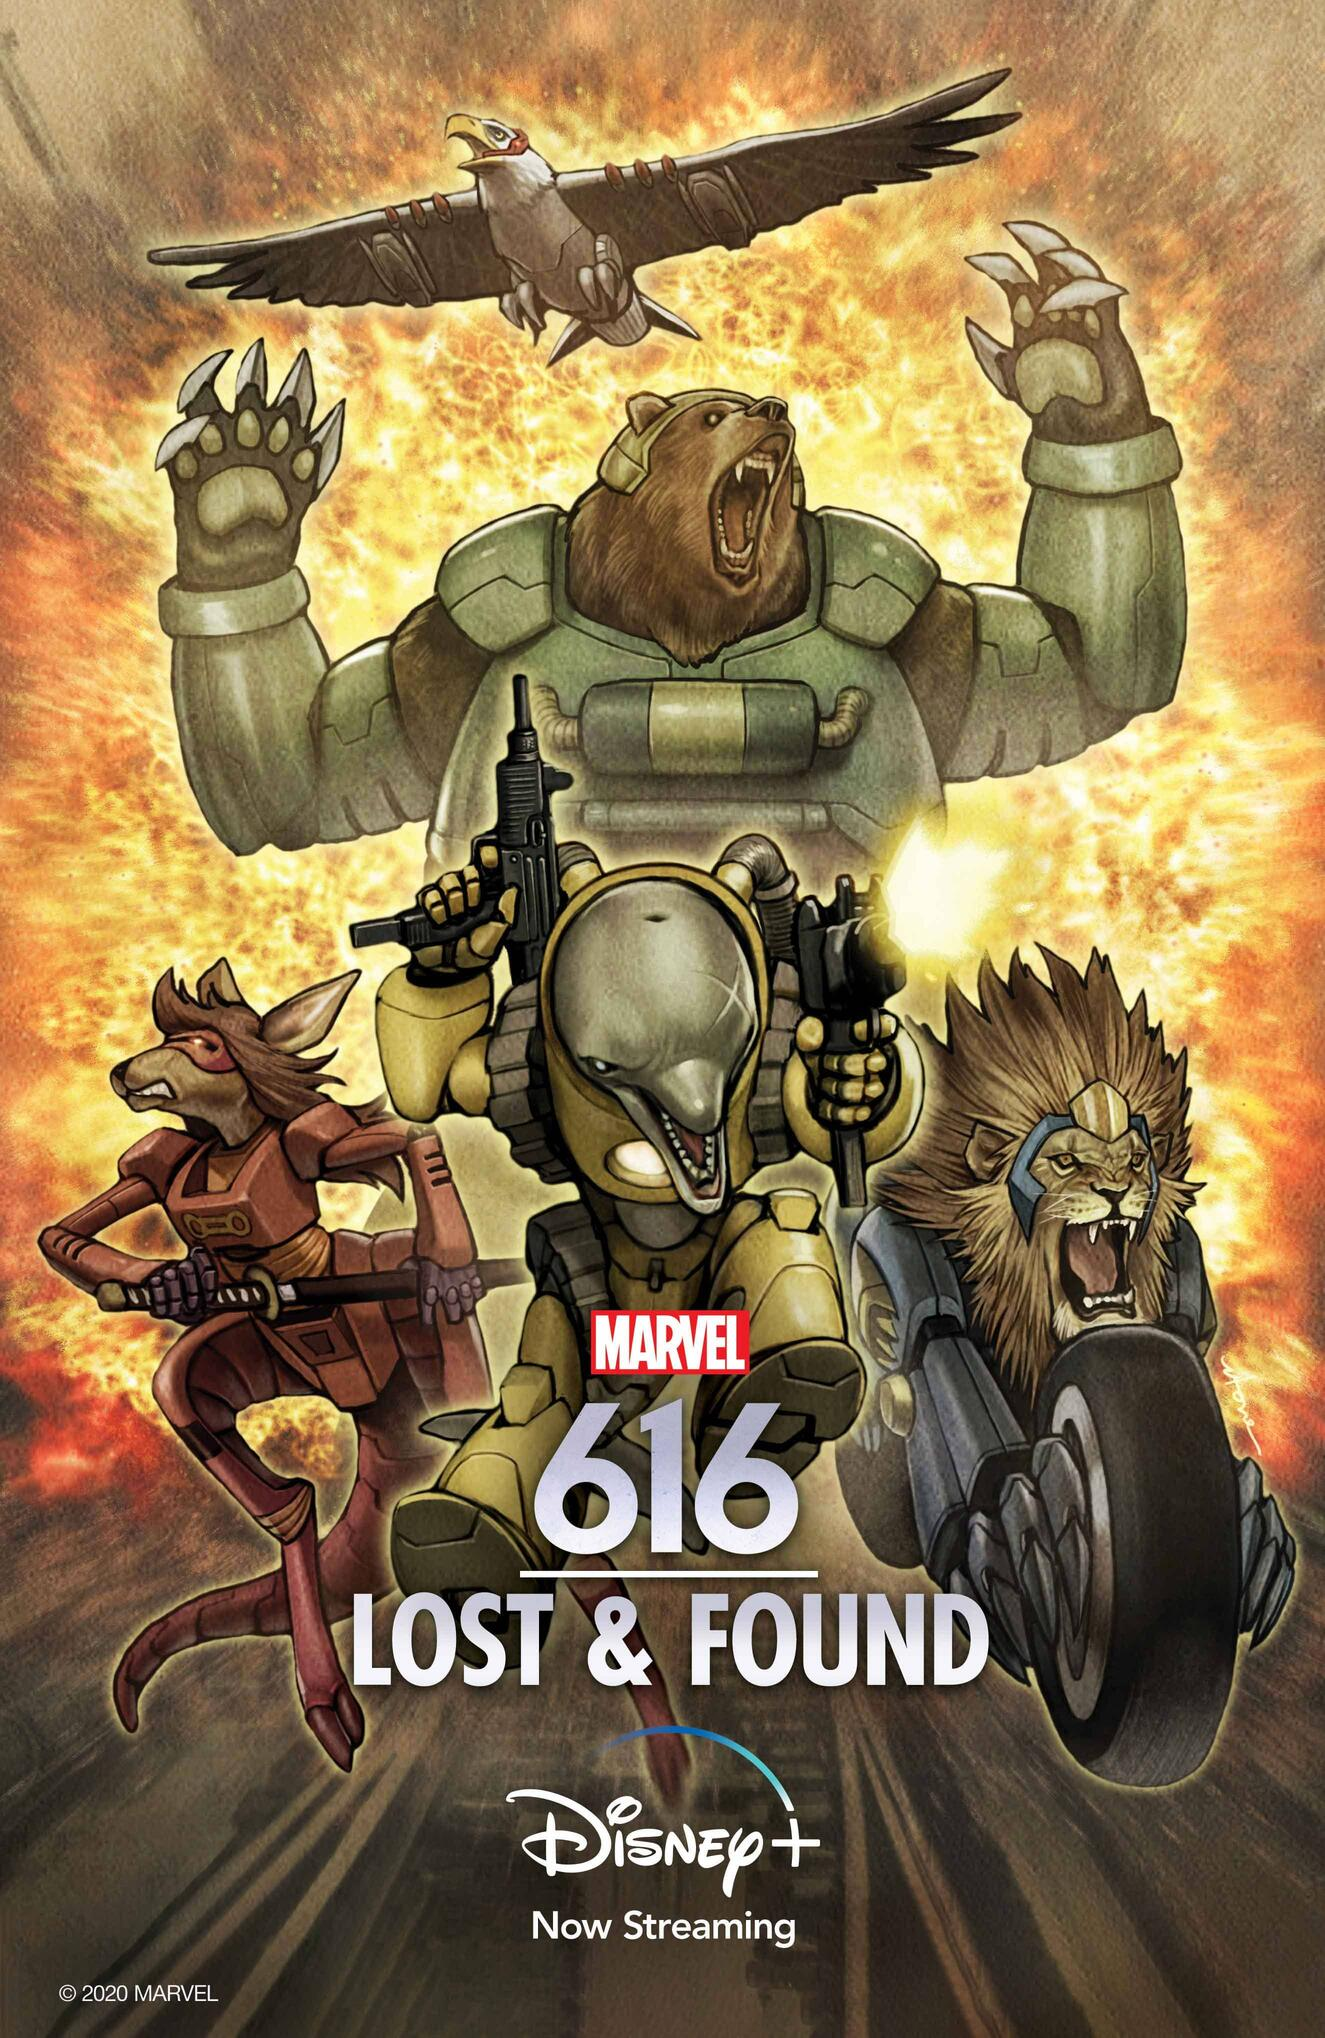 Marvel's 616 Lost and Found